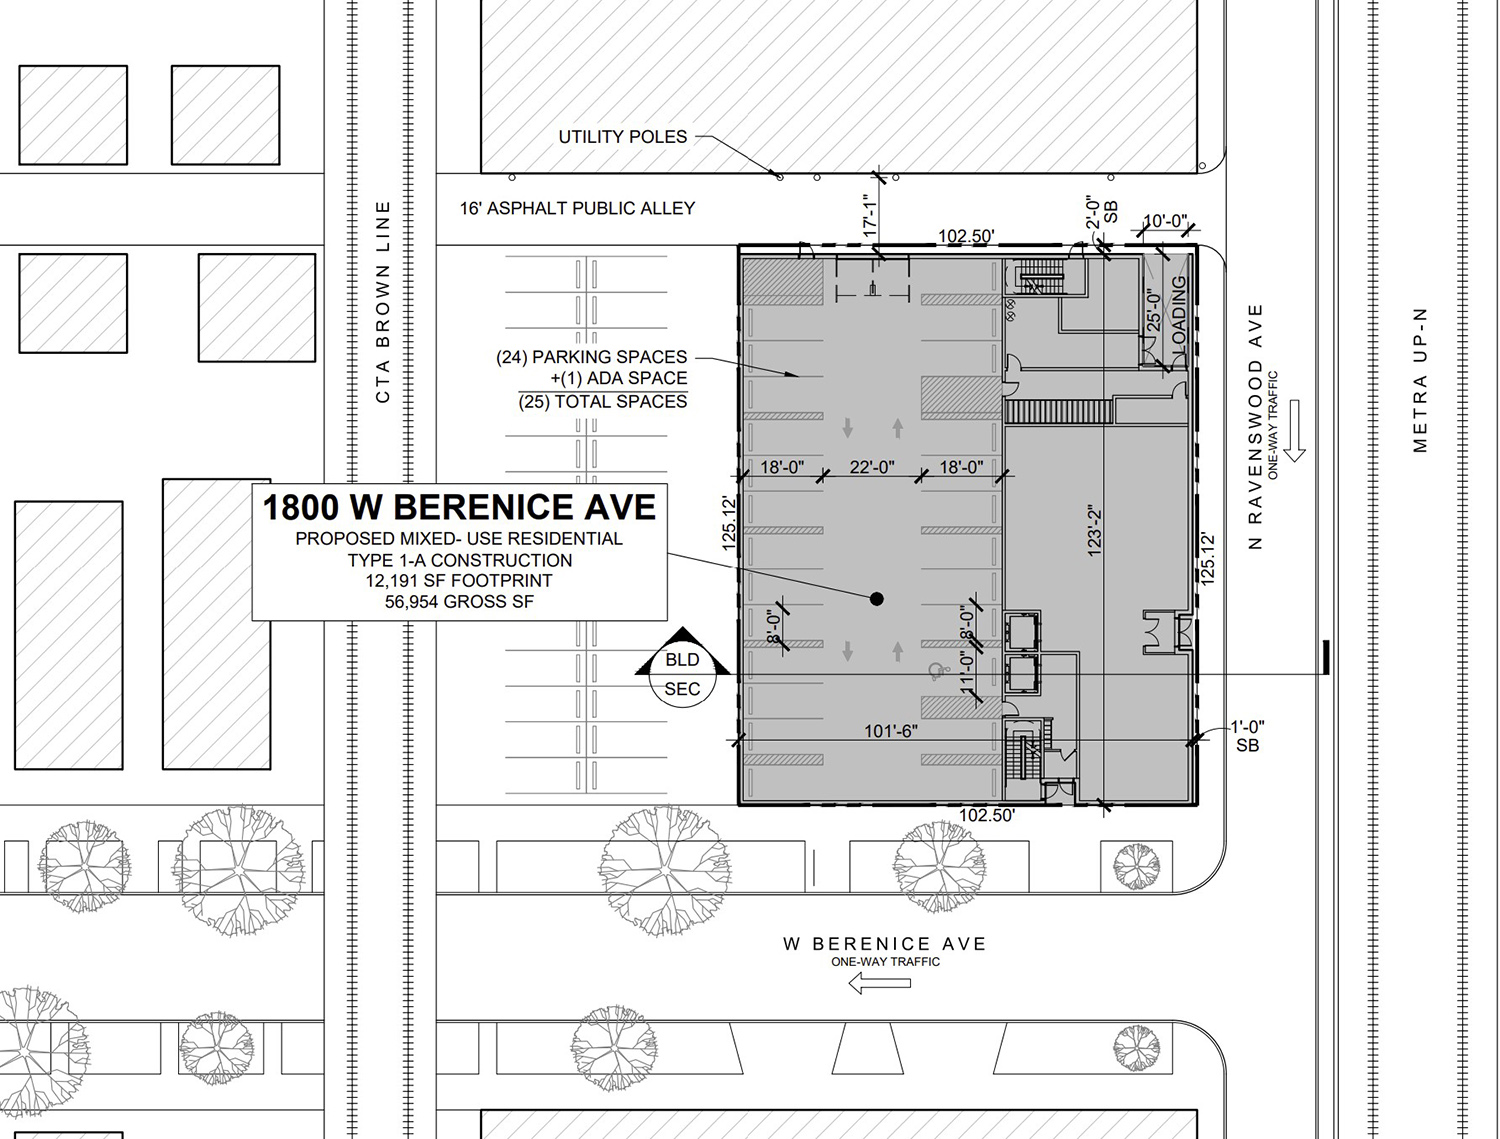 Site Plan for 1800 W Berenice Avenue. Drawing by Sullivan Goulette Wilson Architects